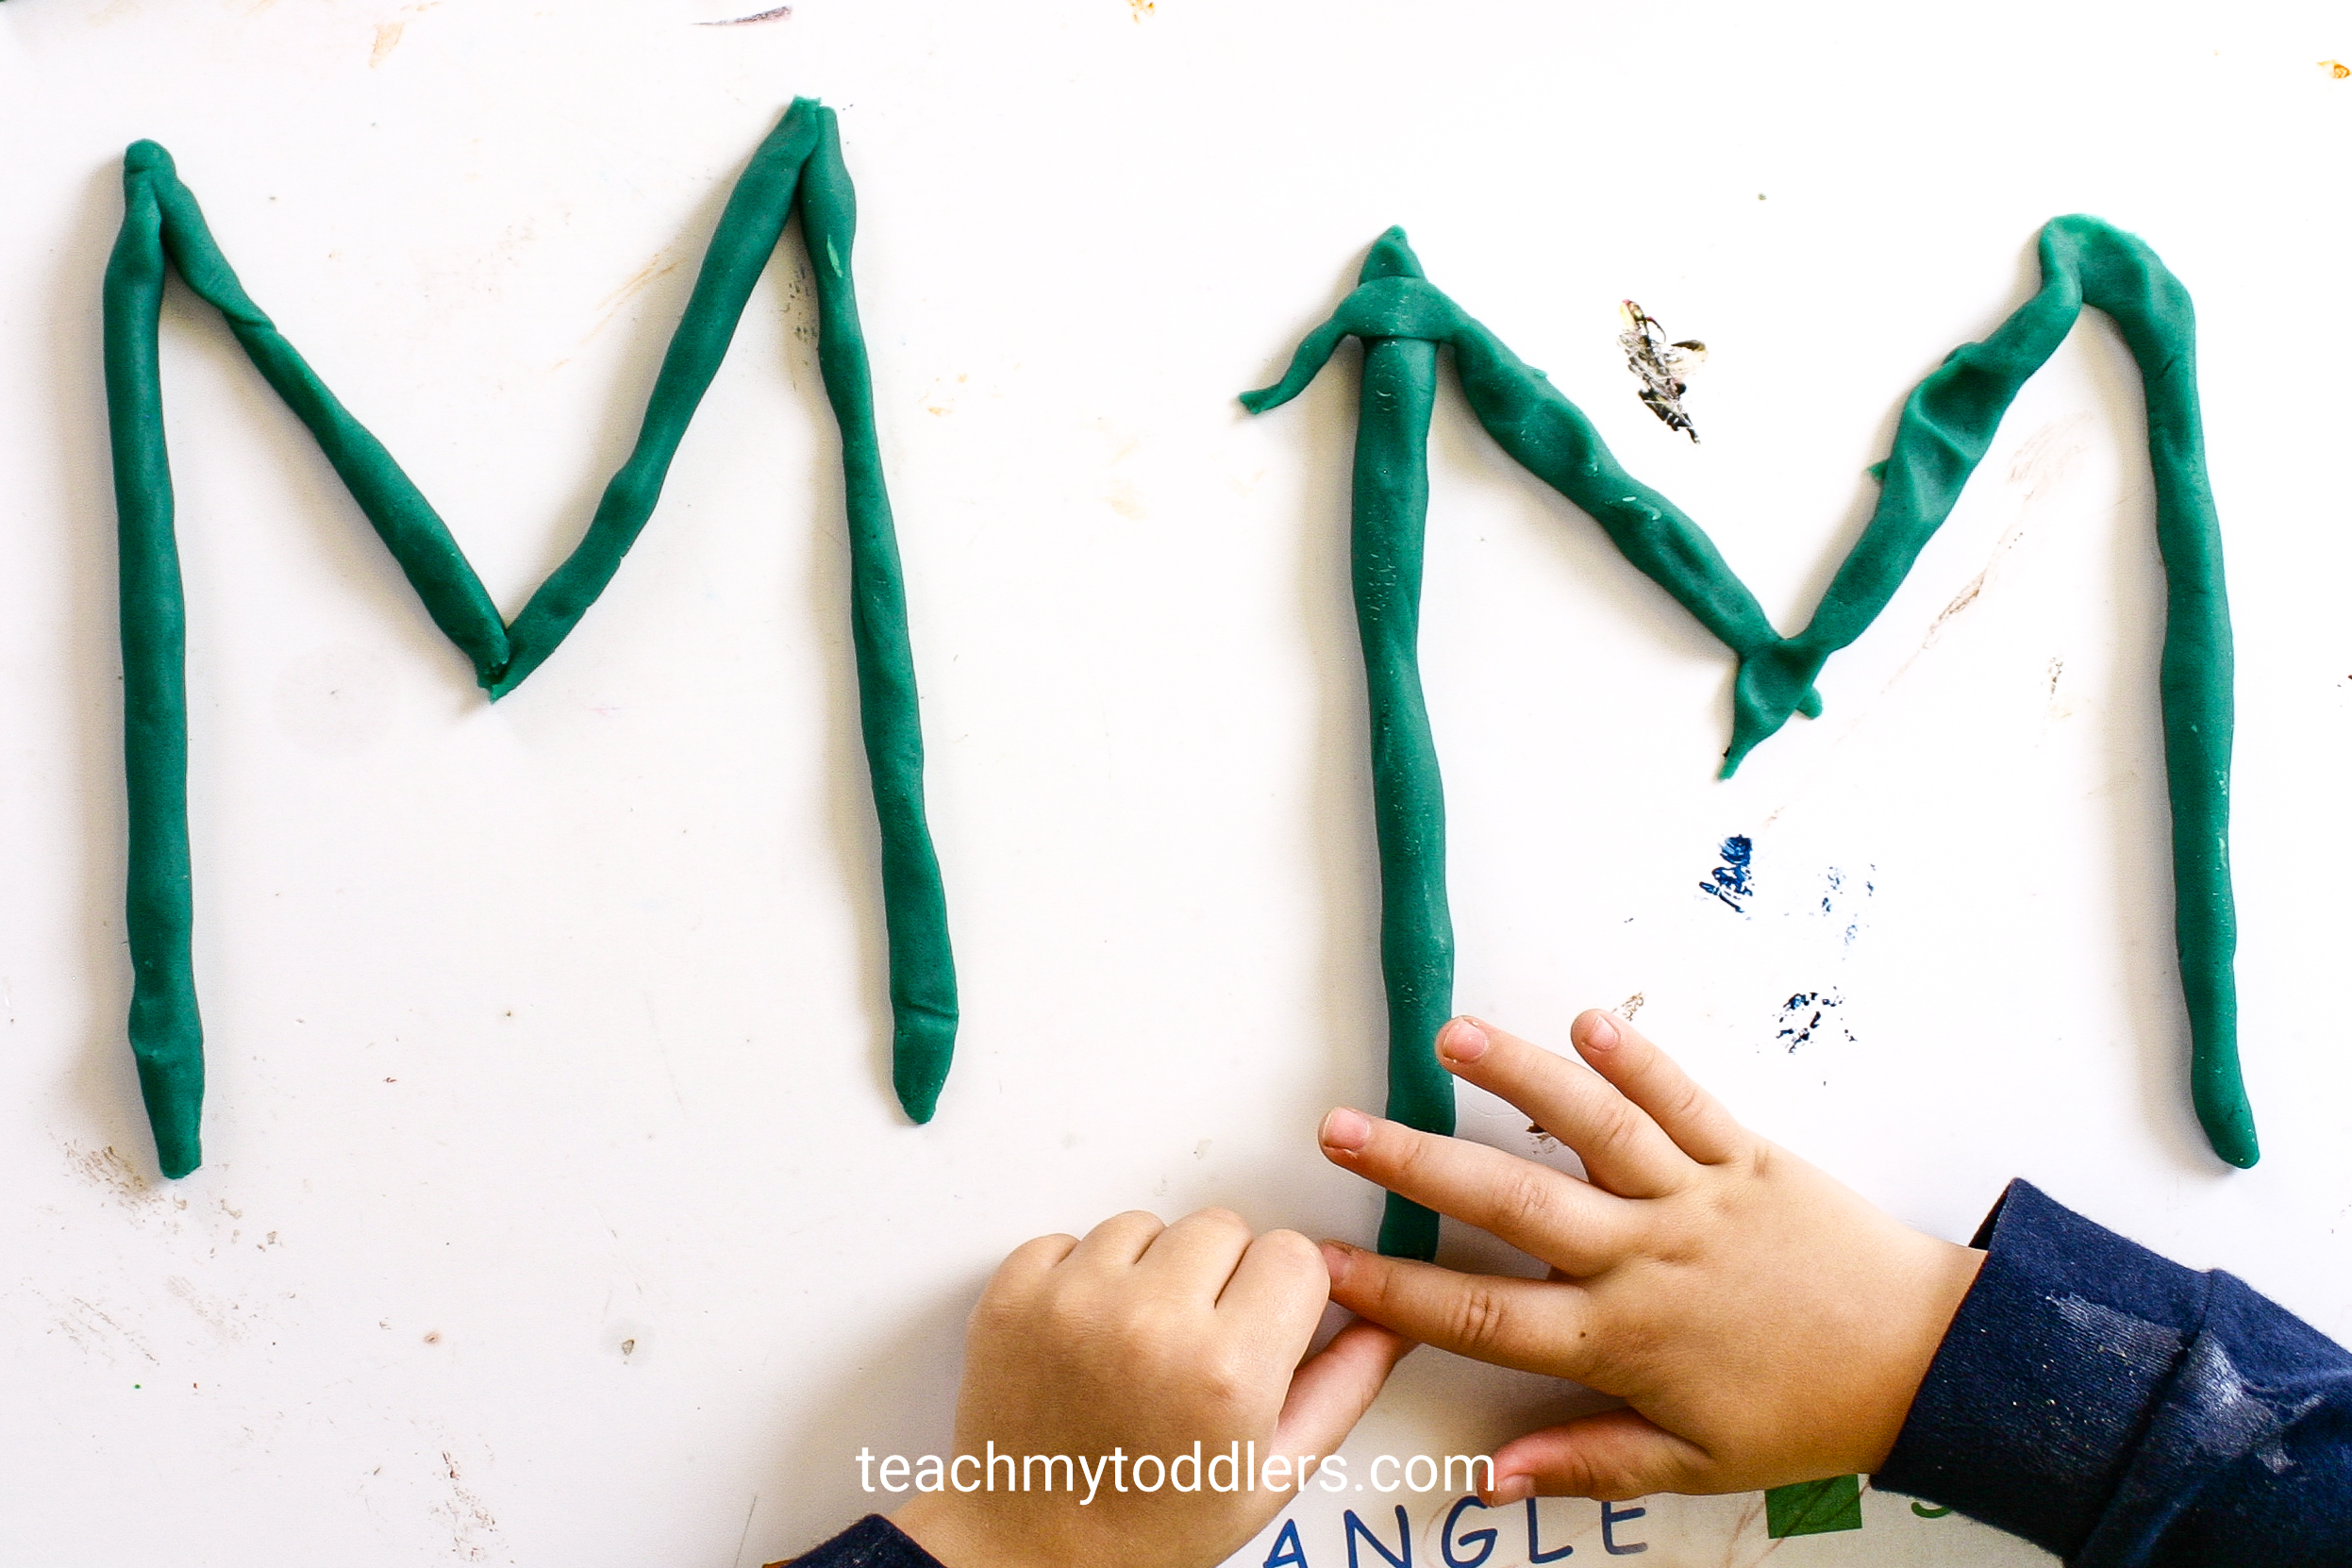 Use these awesome monster activities to teach toddlers the letter m